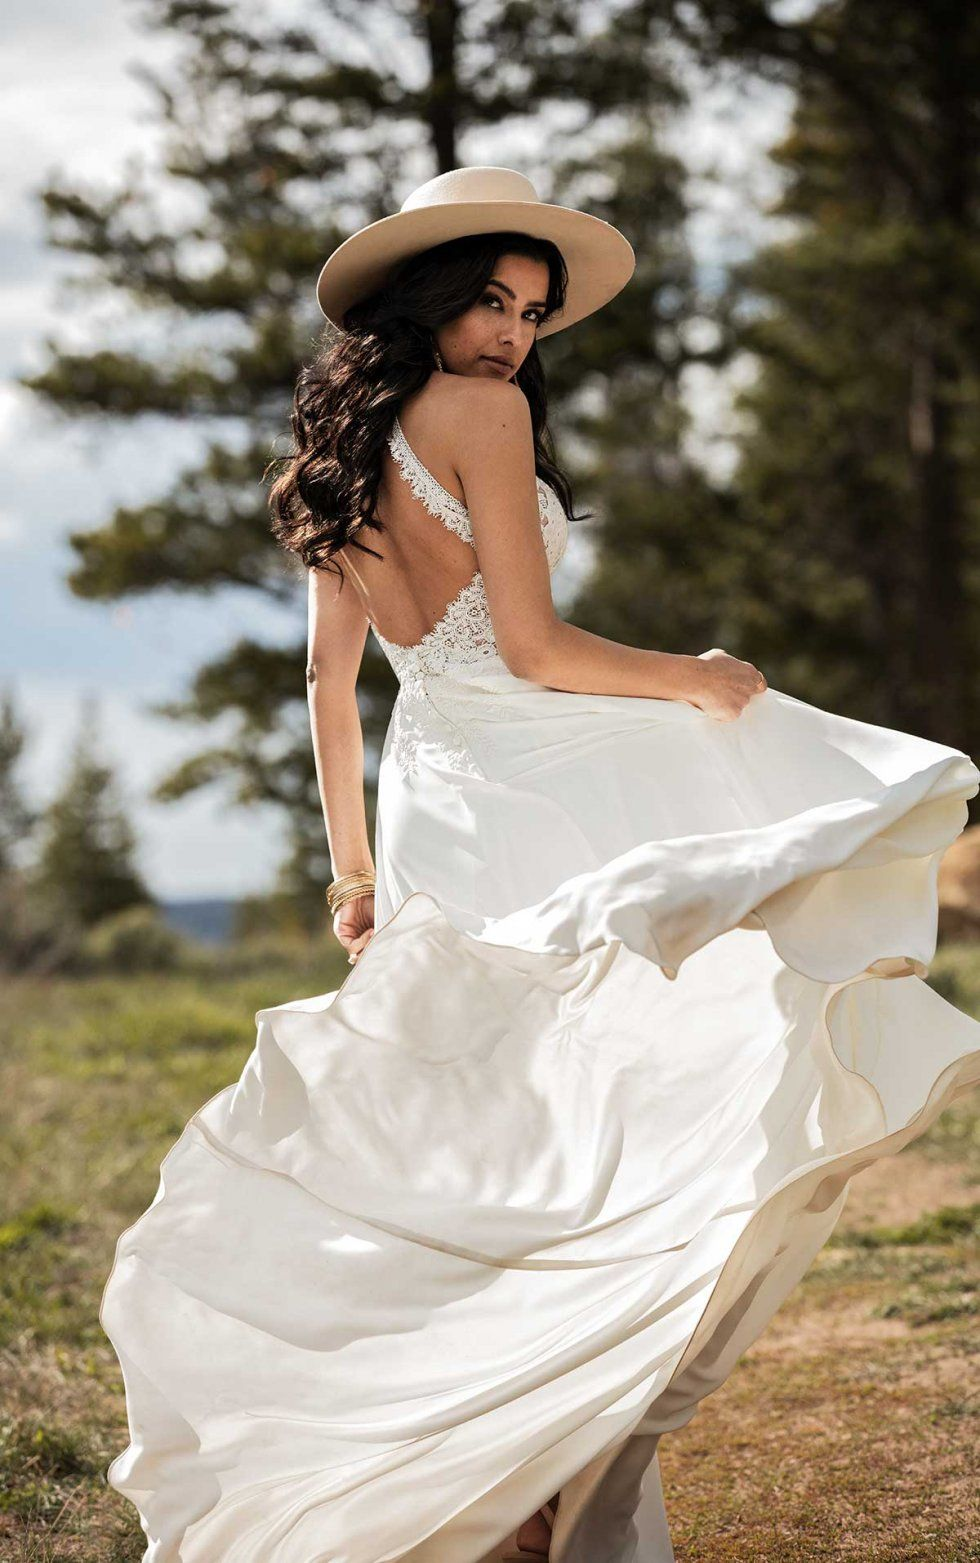 Simple Bohemian Wedding Dress With Removable Arm Cuffs All Who Wander Boho Bridal Gowns Wedding Dresses Affordable Wedding Dresses [ 1563 x 980 Pixel ]